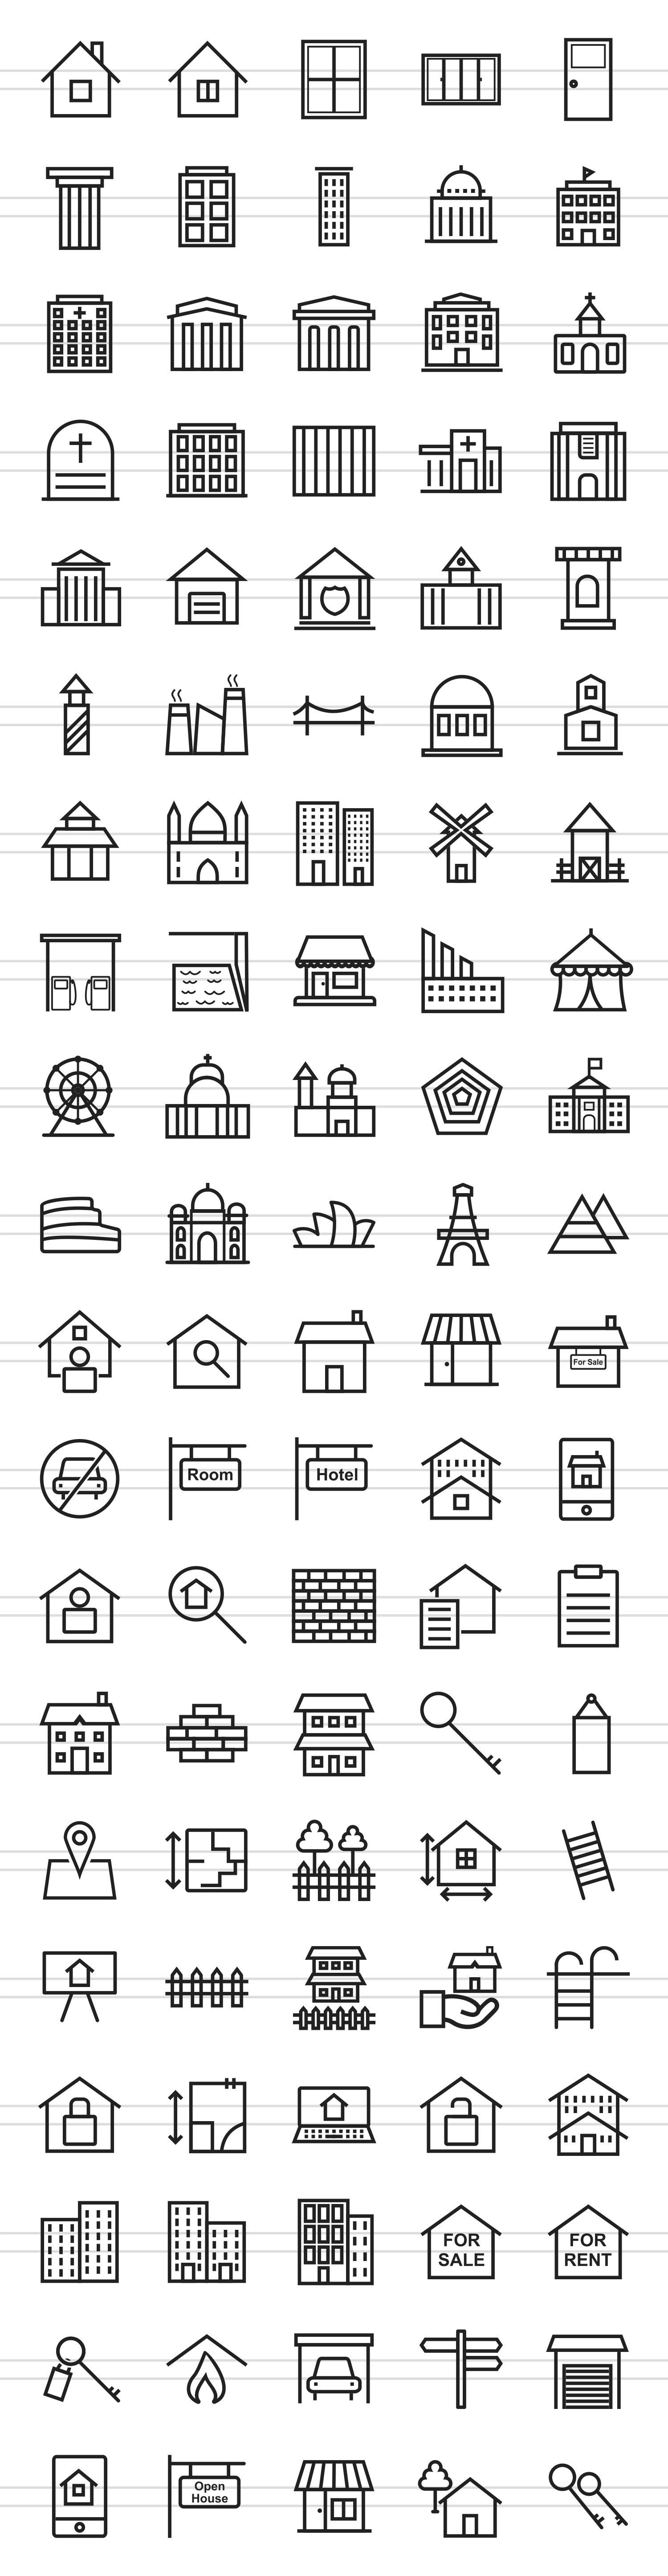 100 Building & Landmarks Line Icons example image 2